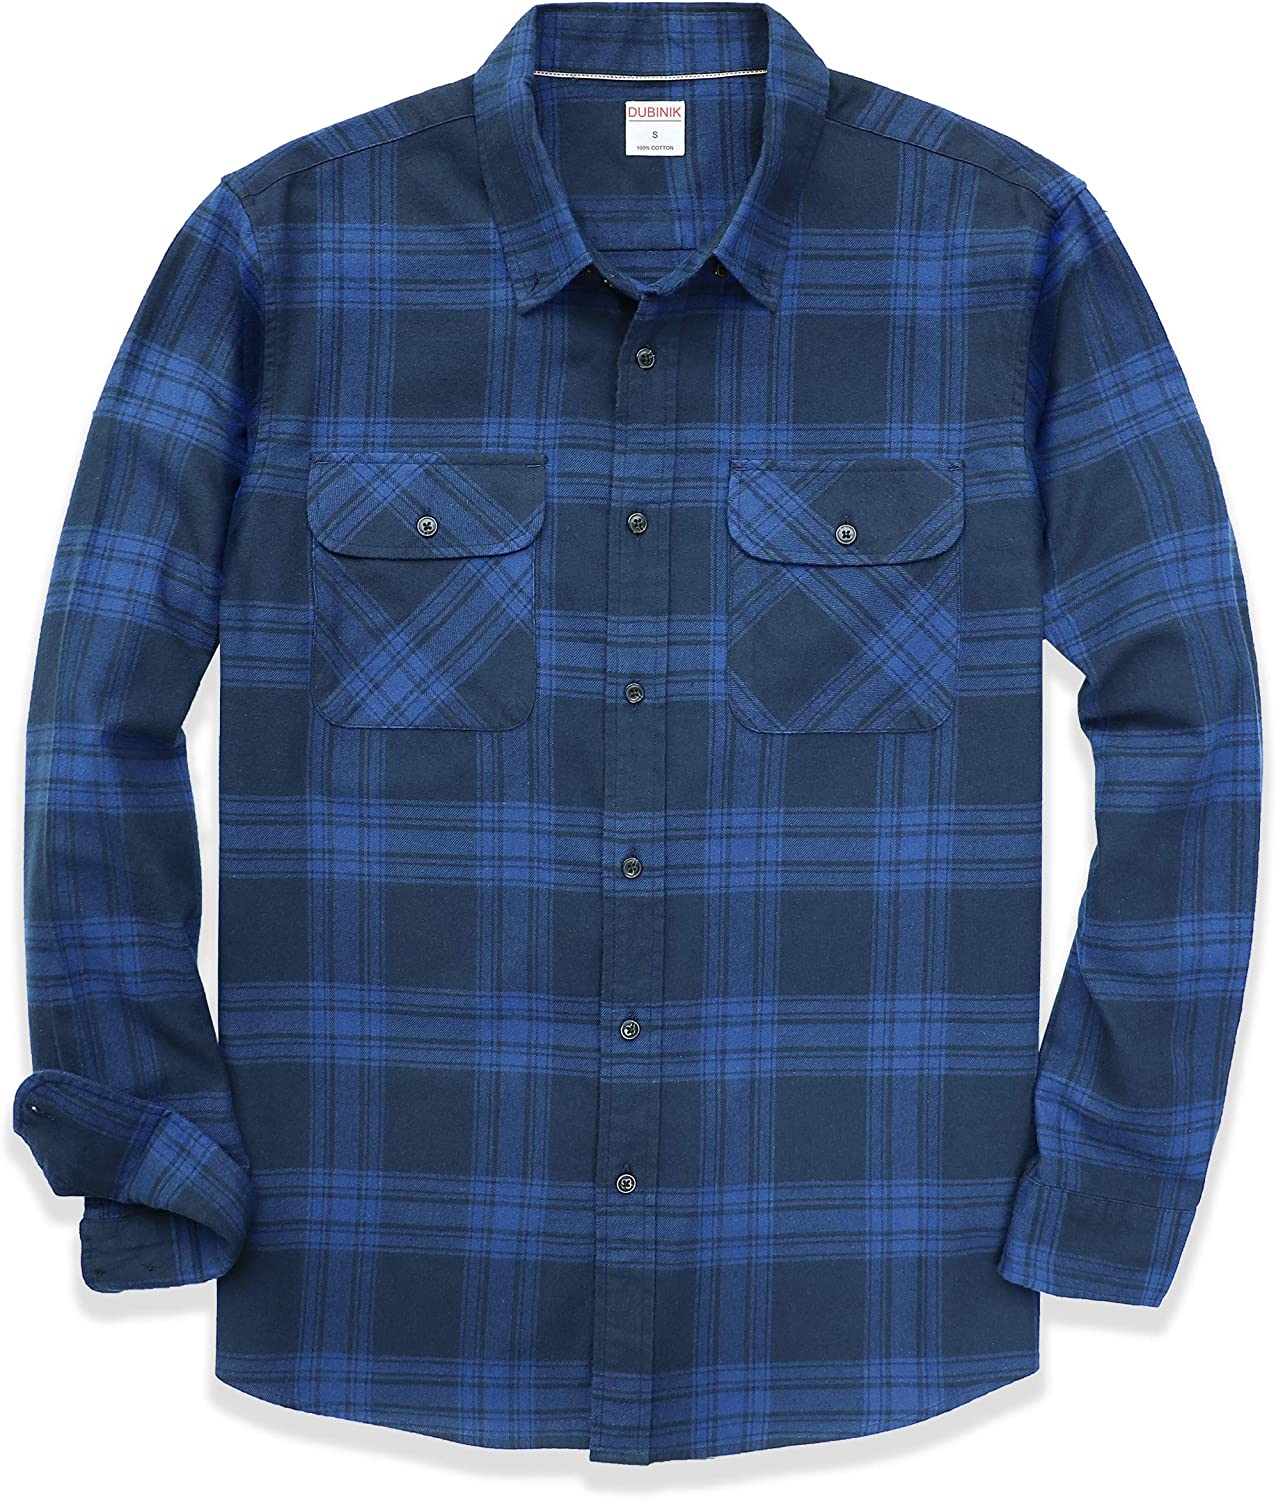 Dubinik Flannel Shirts for Men Long Sleeve Button Down Plaid 100% Cotton Casual Shirt with Pocket